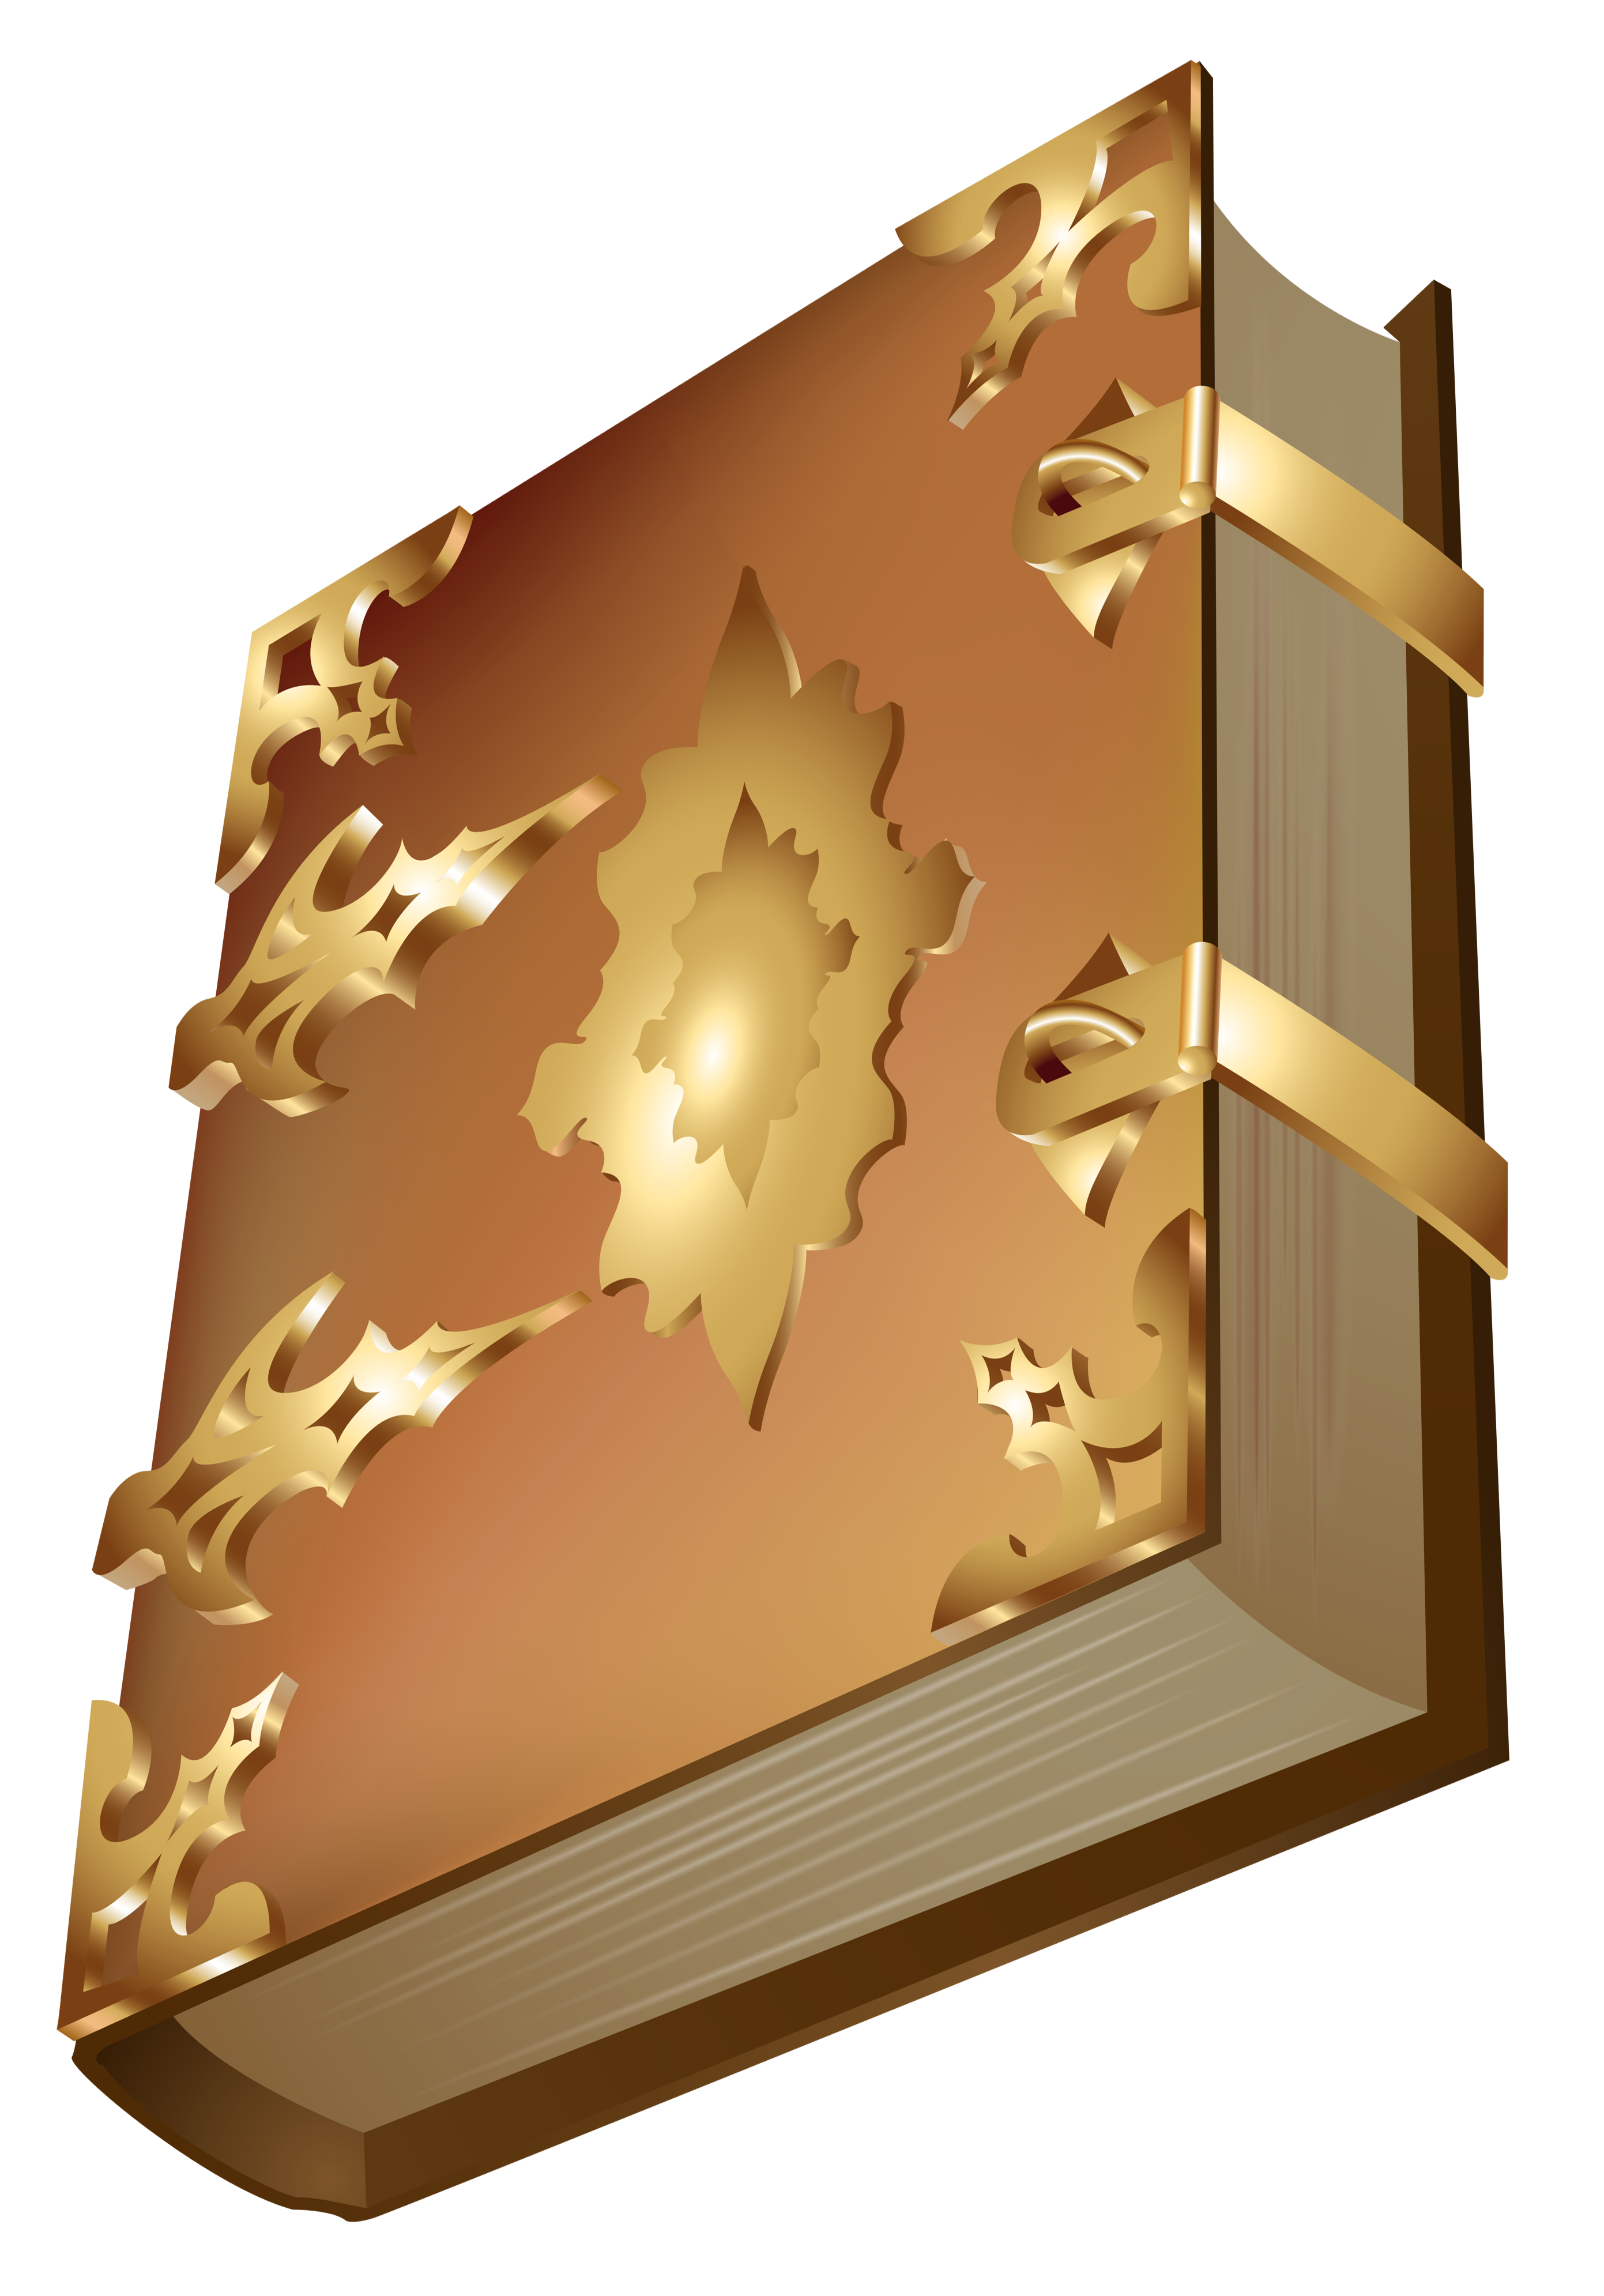 Old Book Clipart.